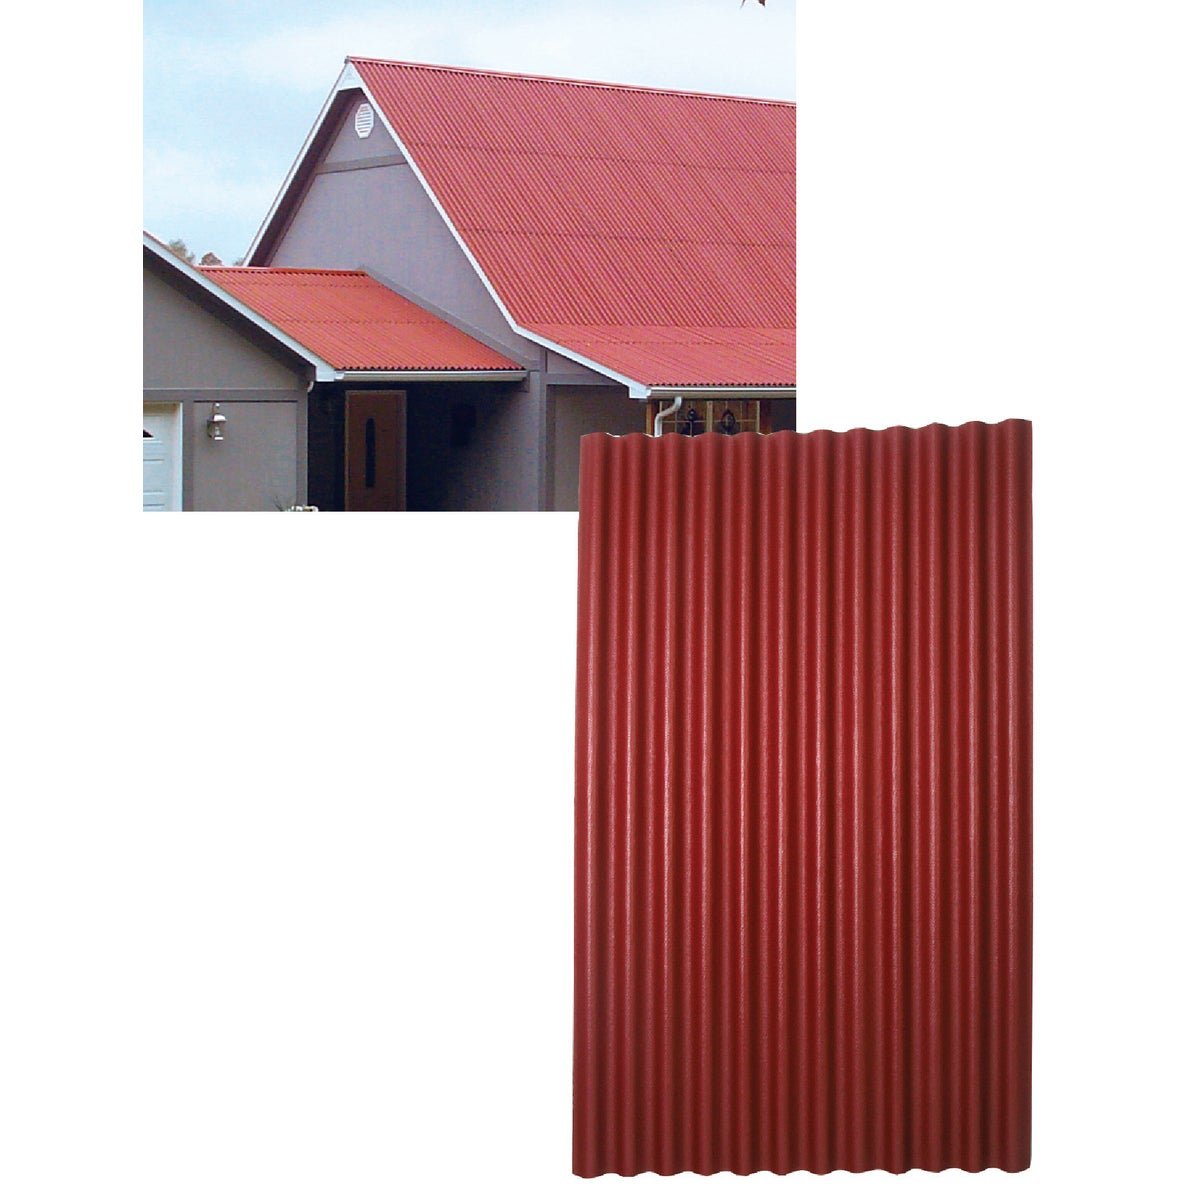 48X79 RED ONDURA ROOFING - 153 by Ofic North America